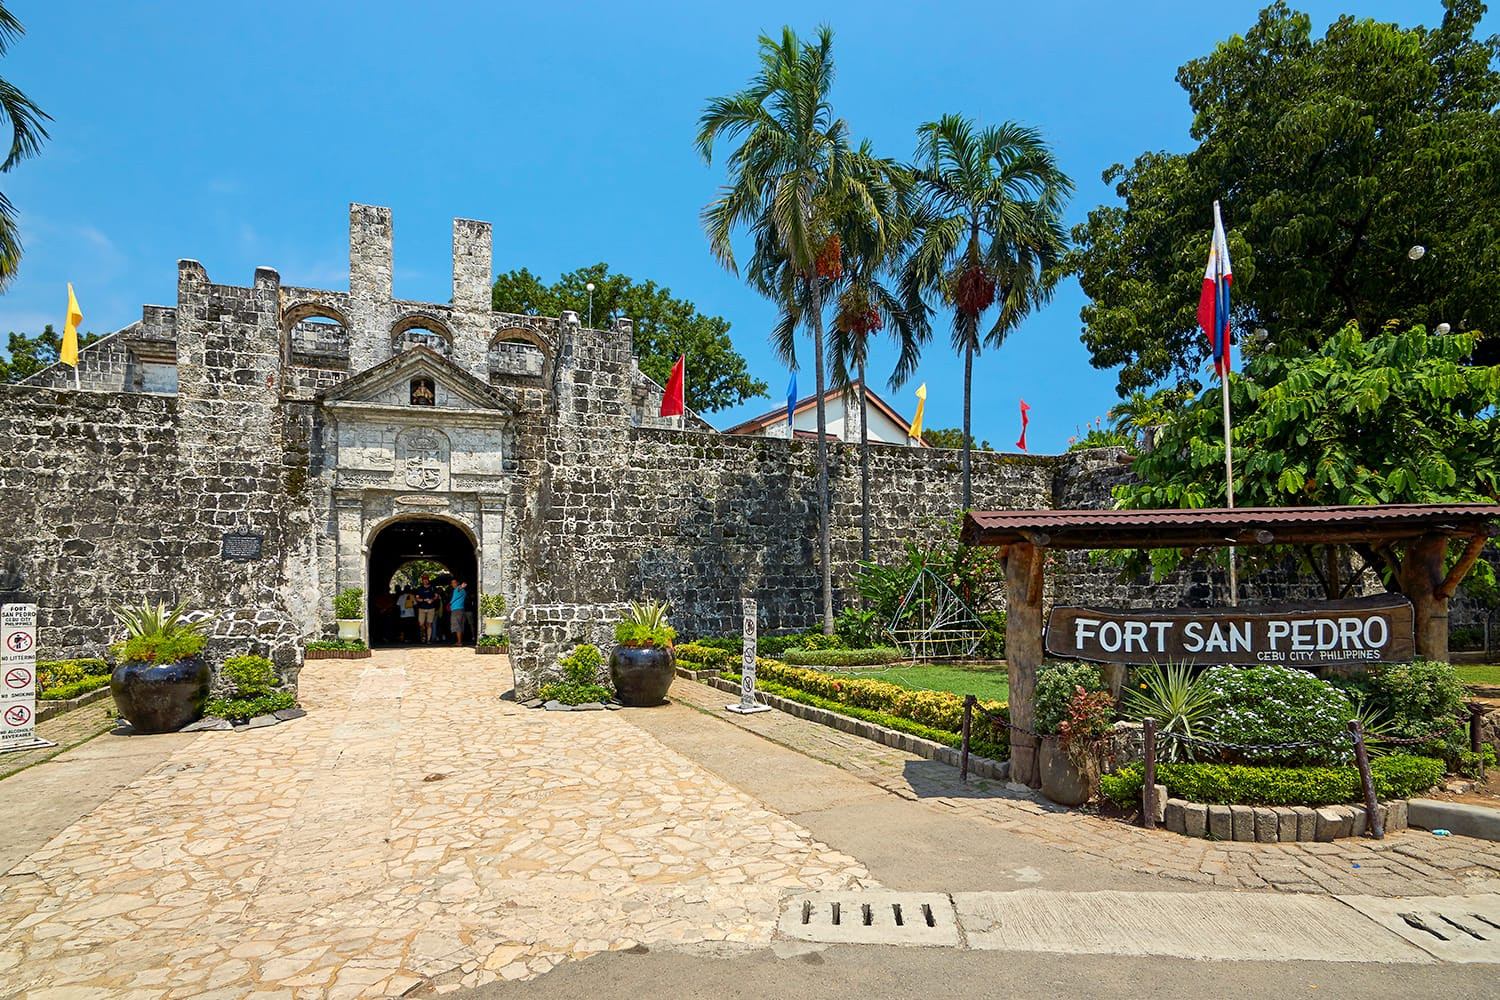 Fort San Pedro, built by the Spanish colonists, is a popular landmark of Cebu city, Philippines